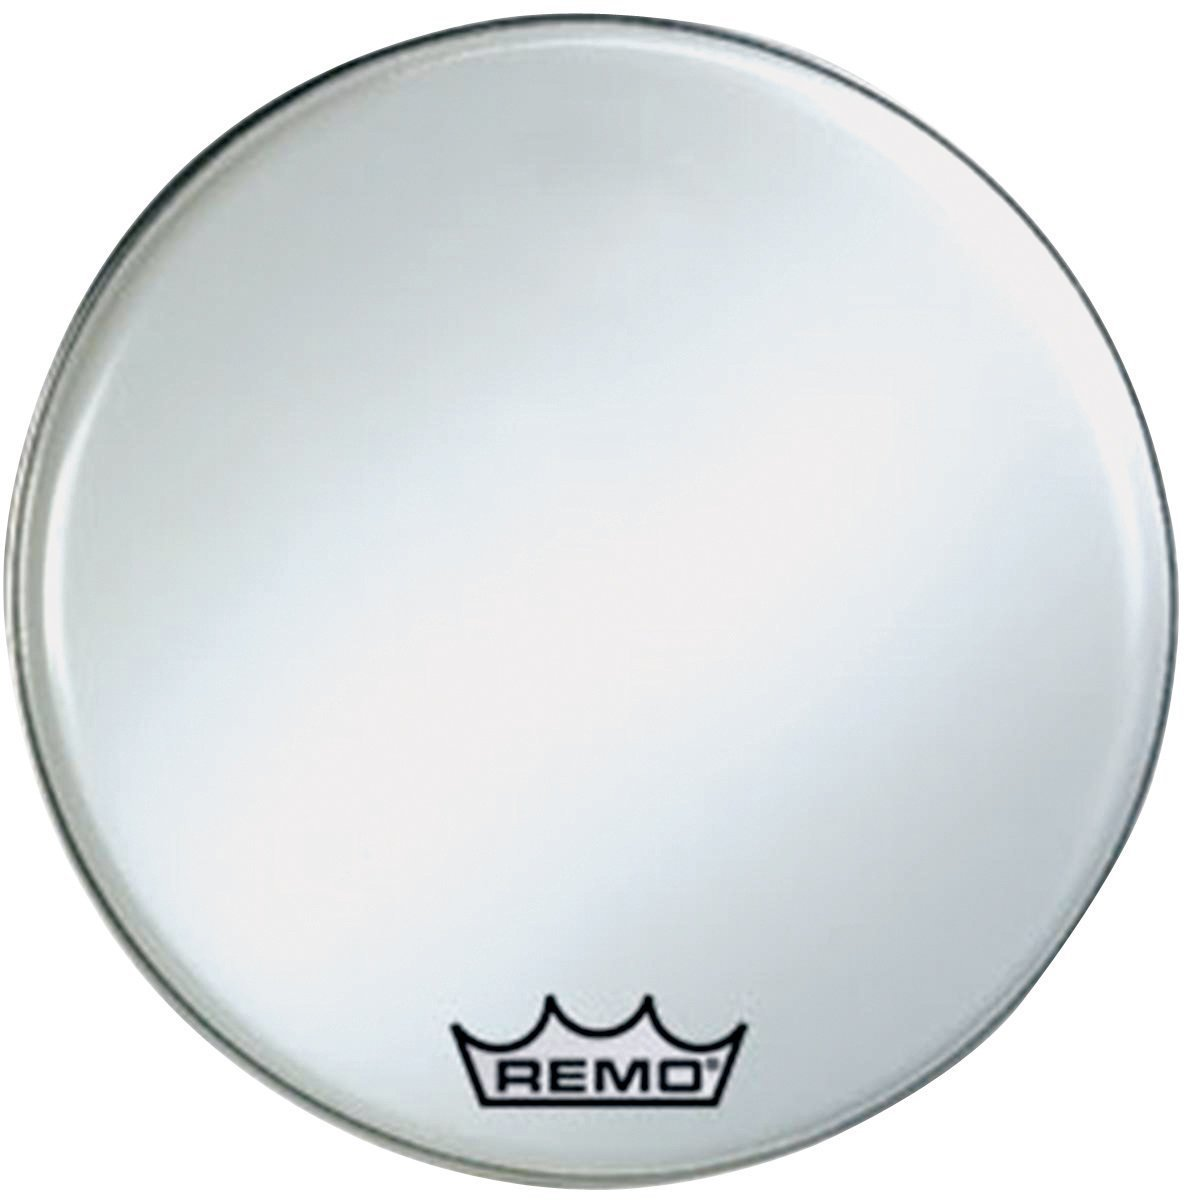 Remo BB1224-MP Smooth White Emperor Marching Bass Drum Head - 24-Inch BB1224MP